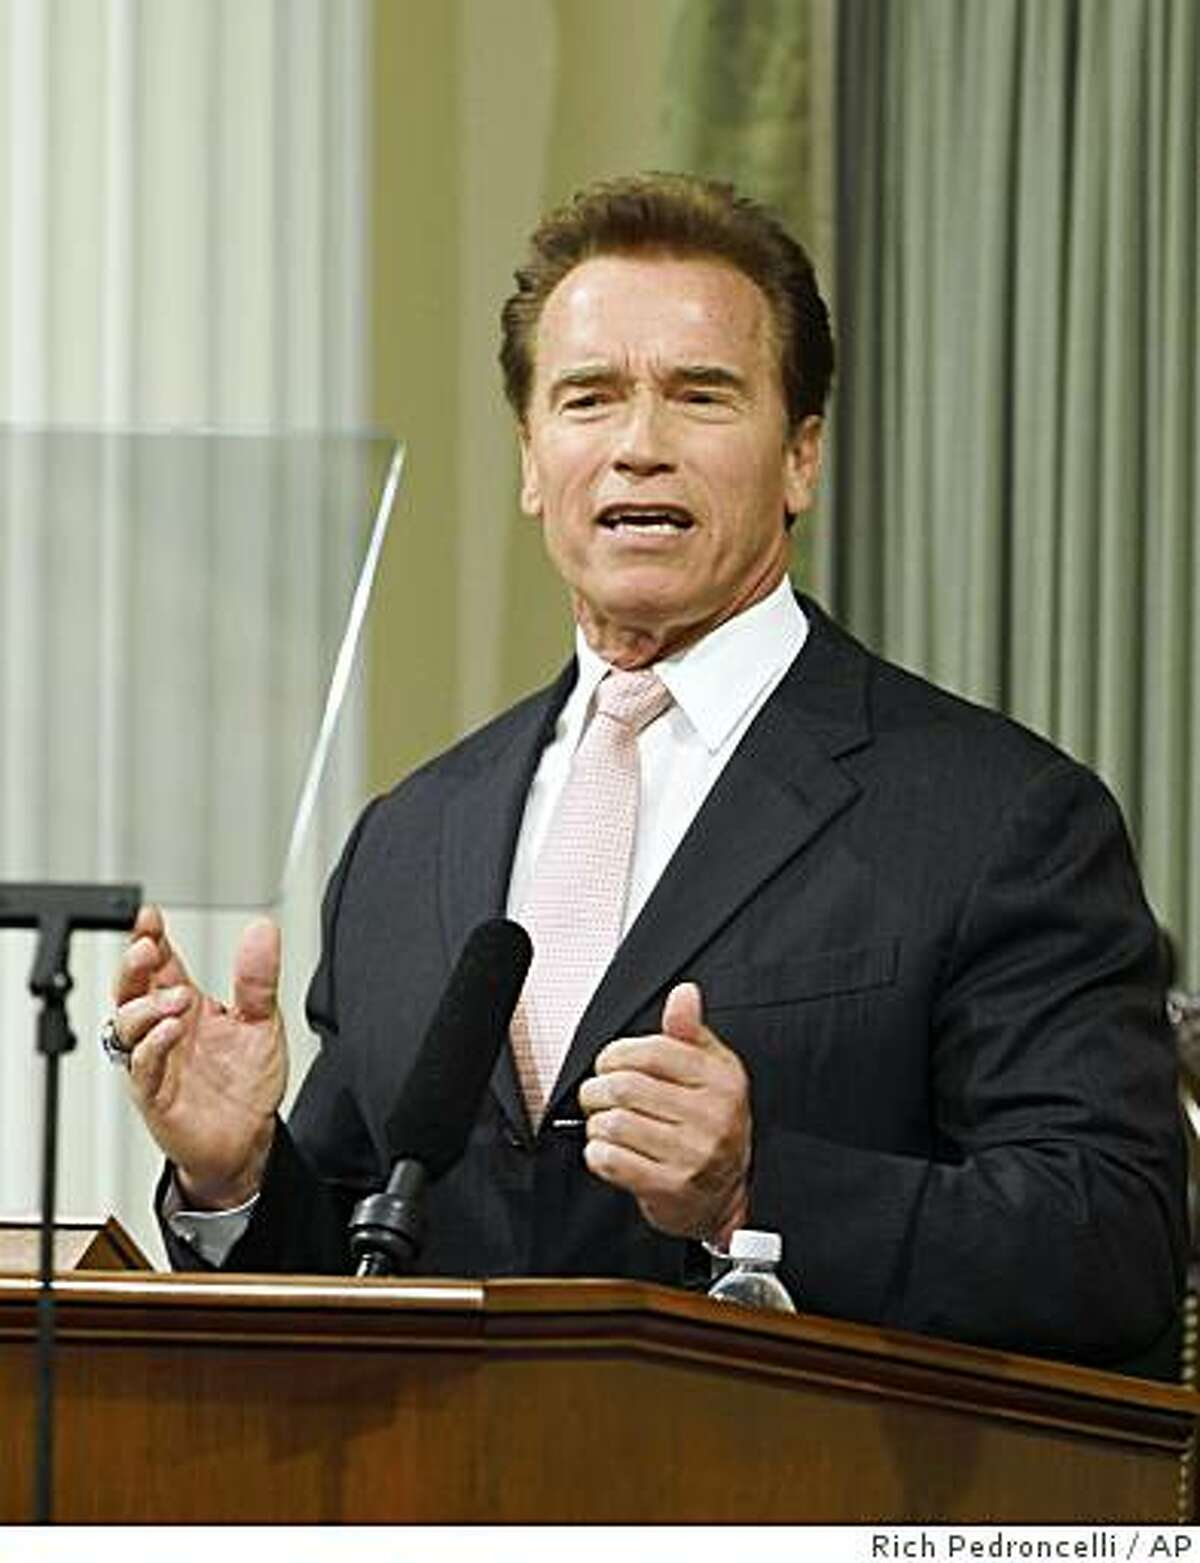 Gov. Arnold Schwarzenegger delivers his State of the State address before a joint session of the Legislature at the Capitol in Sacramento, Calif., Thursday, Jan. 15, 2009.(AP Photo/Rich Pedroncelli)